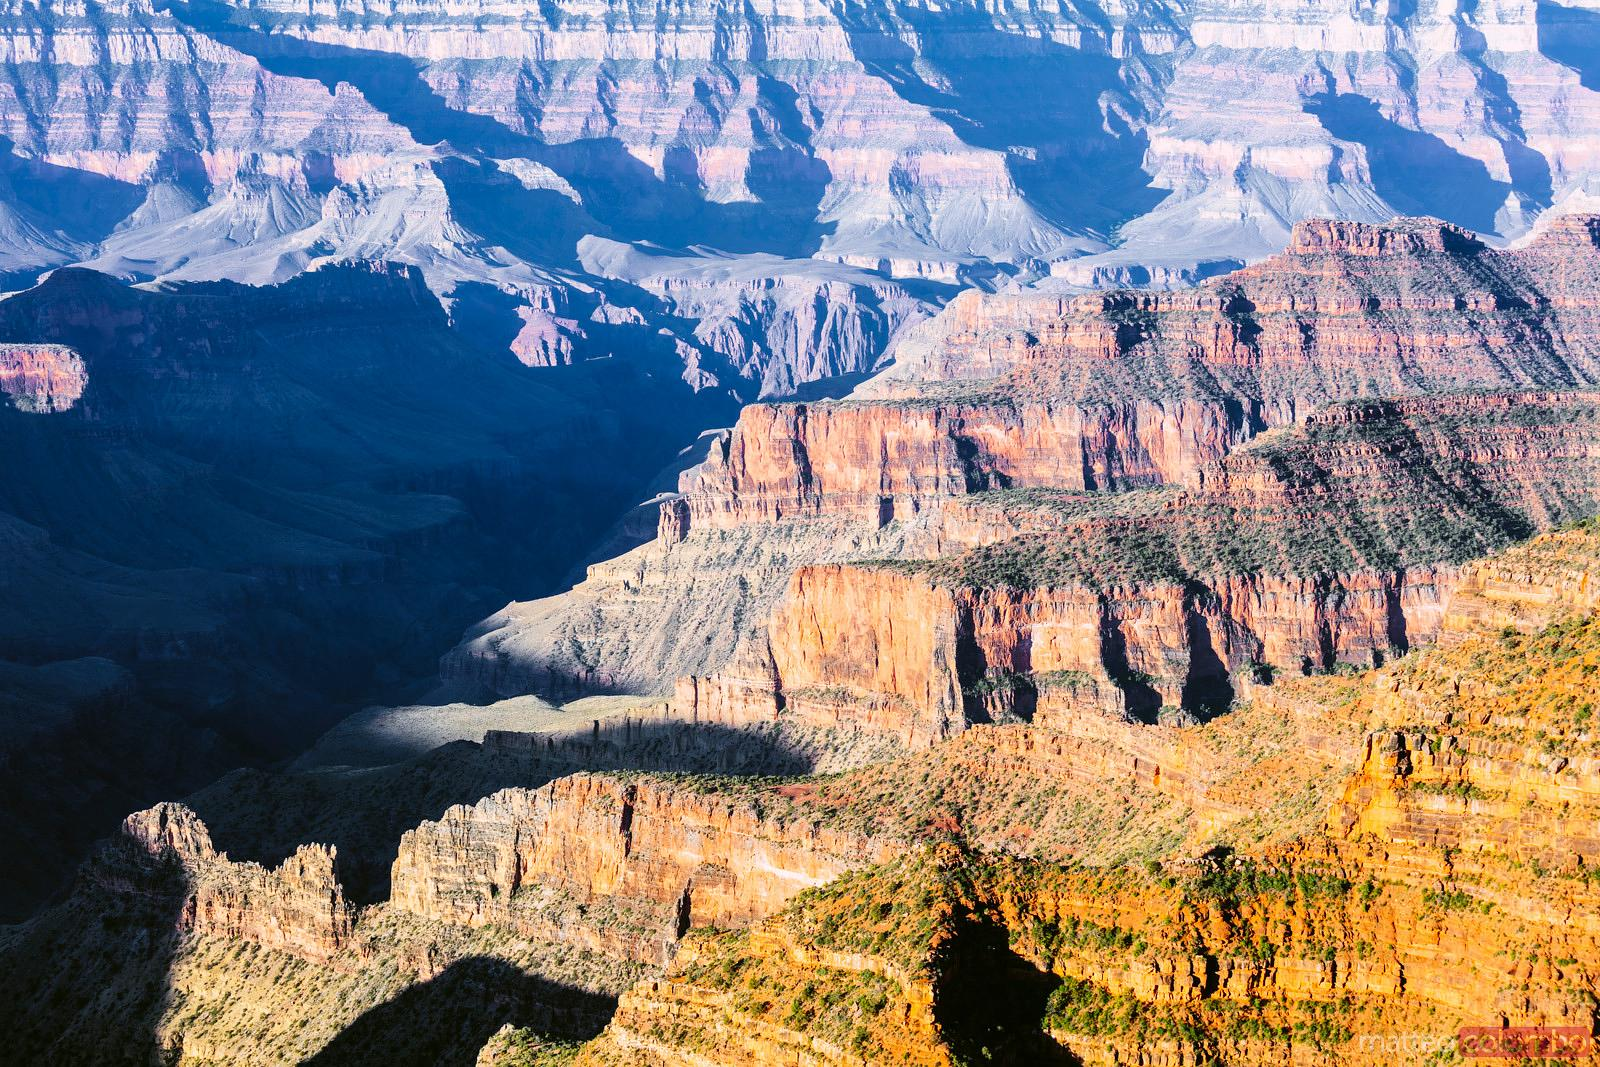 Matteo Colombo Travel Photography | Full frame image of Grand Canyon ...